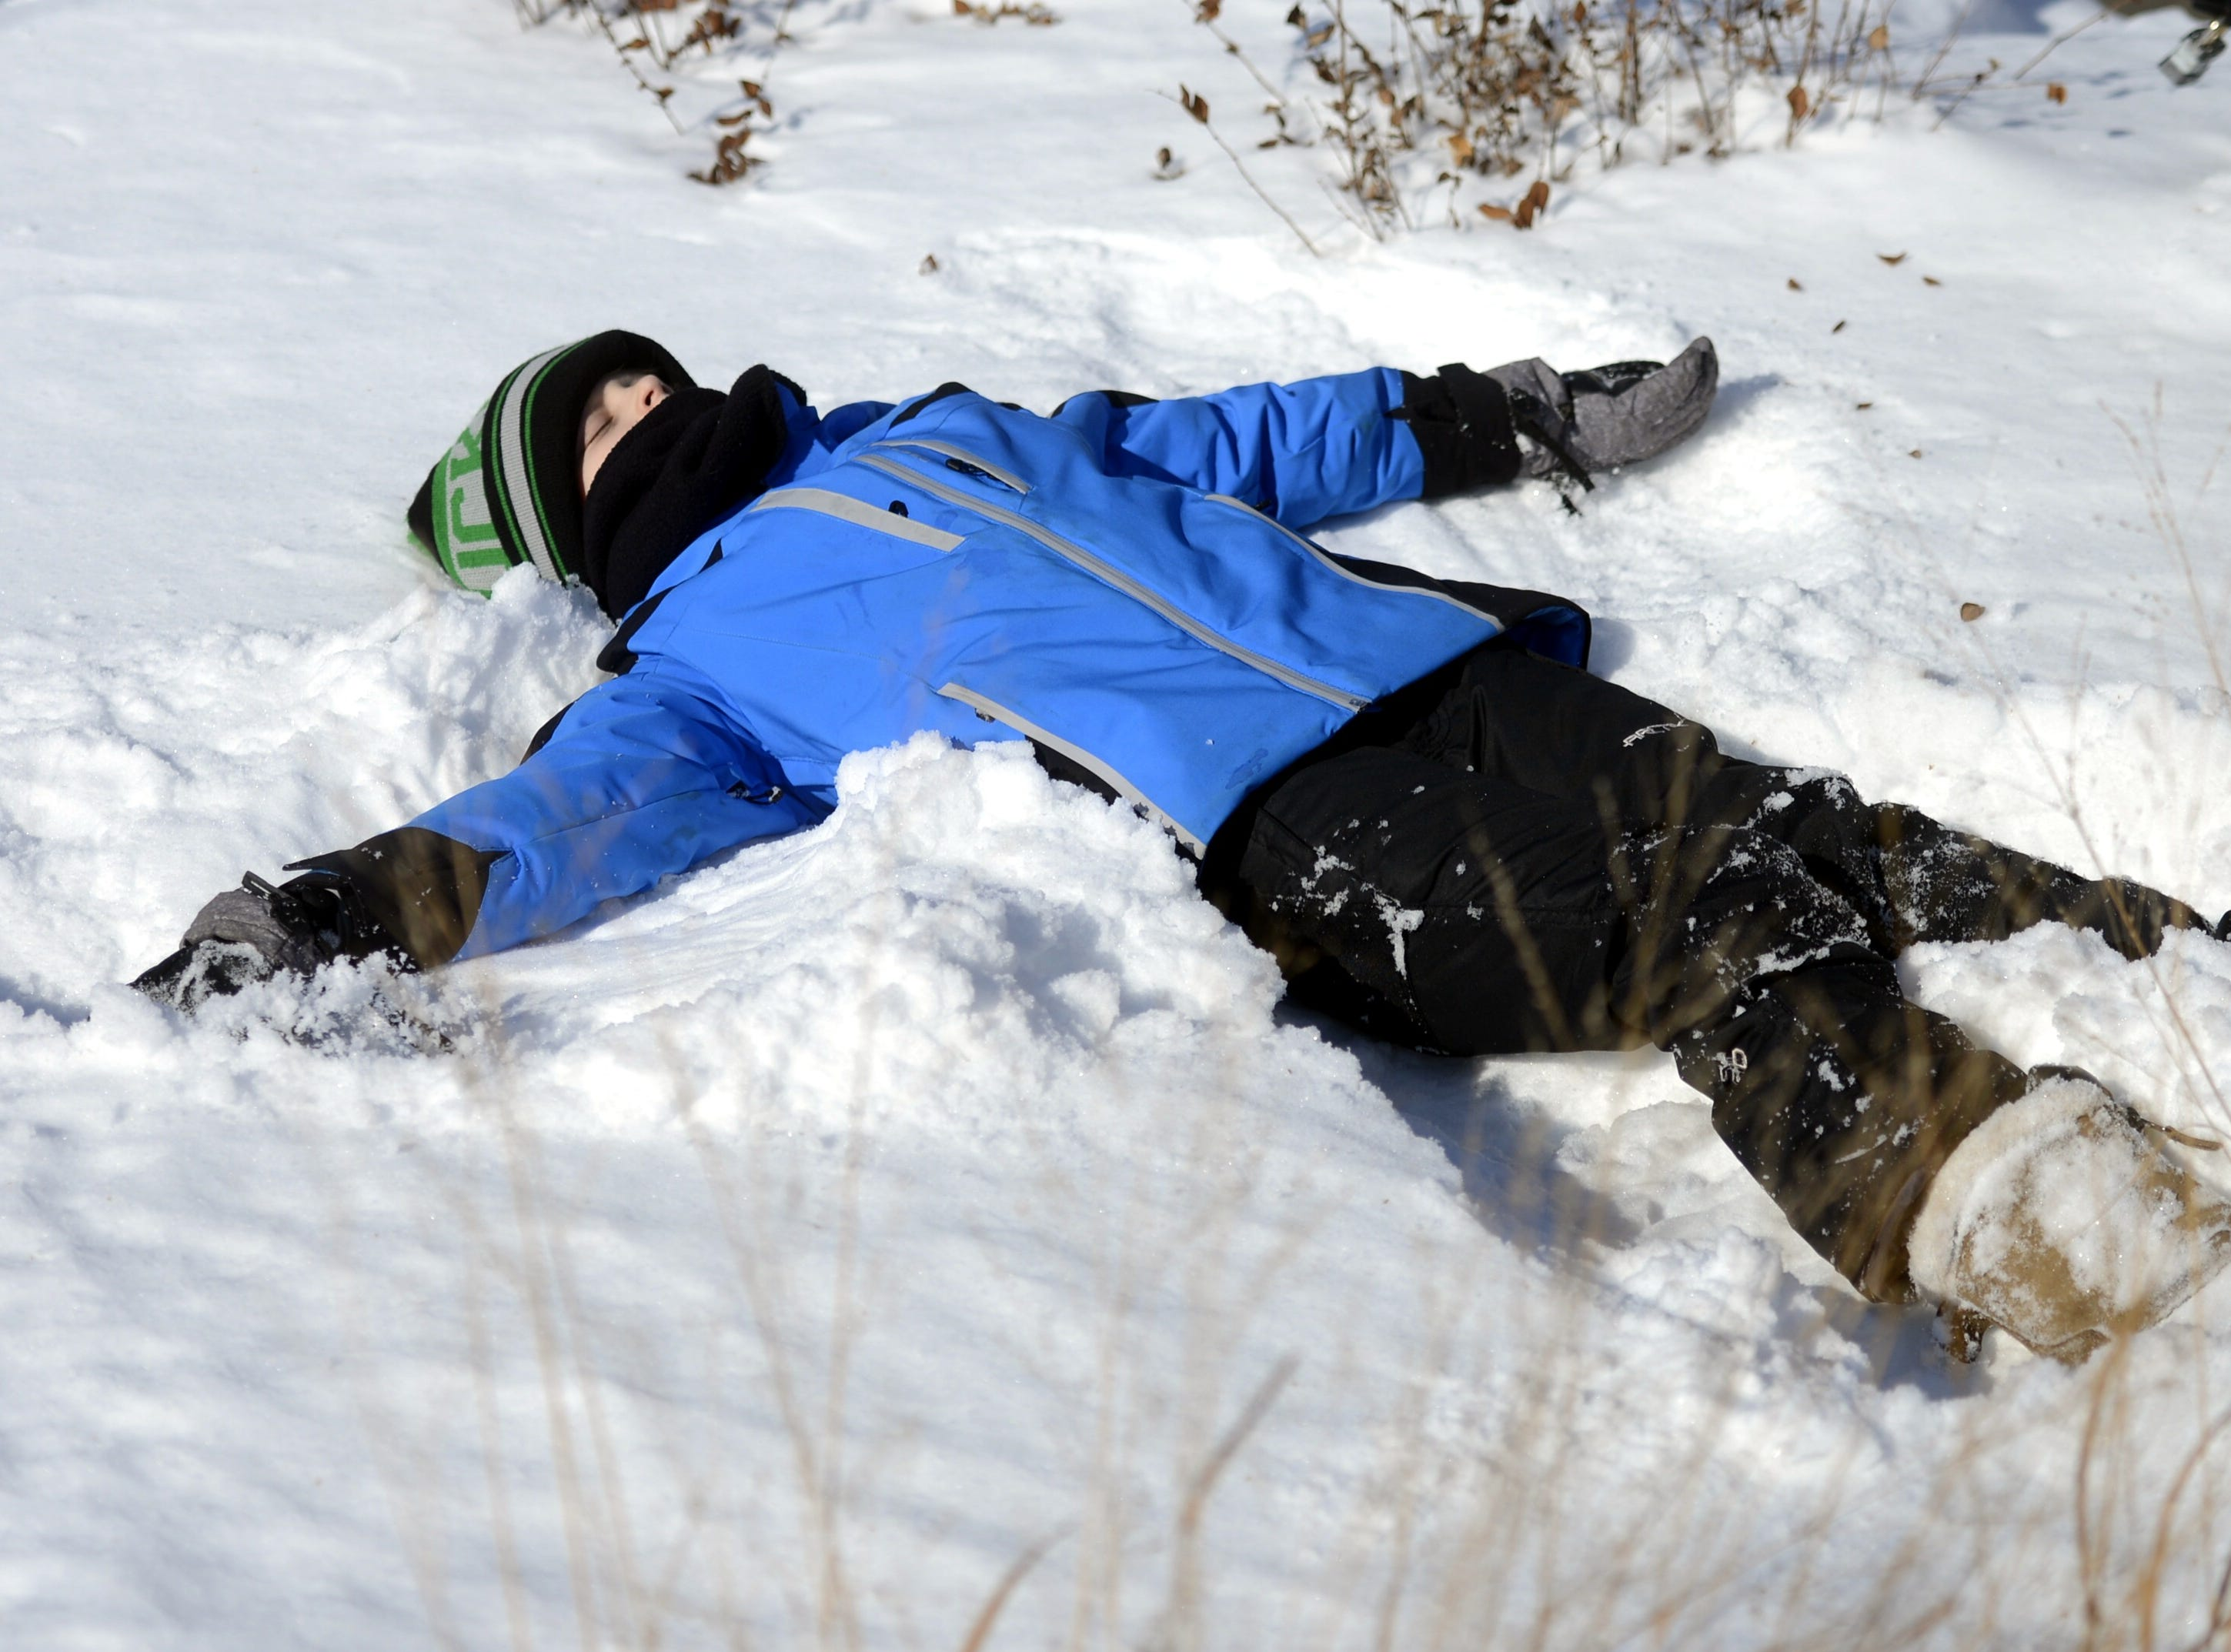 Carter Nitke, 10, of Green Bay makes a snow angel at the Titletown Winter Games on Saturday, Feb. 16, 2019.